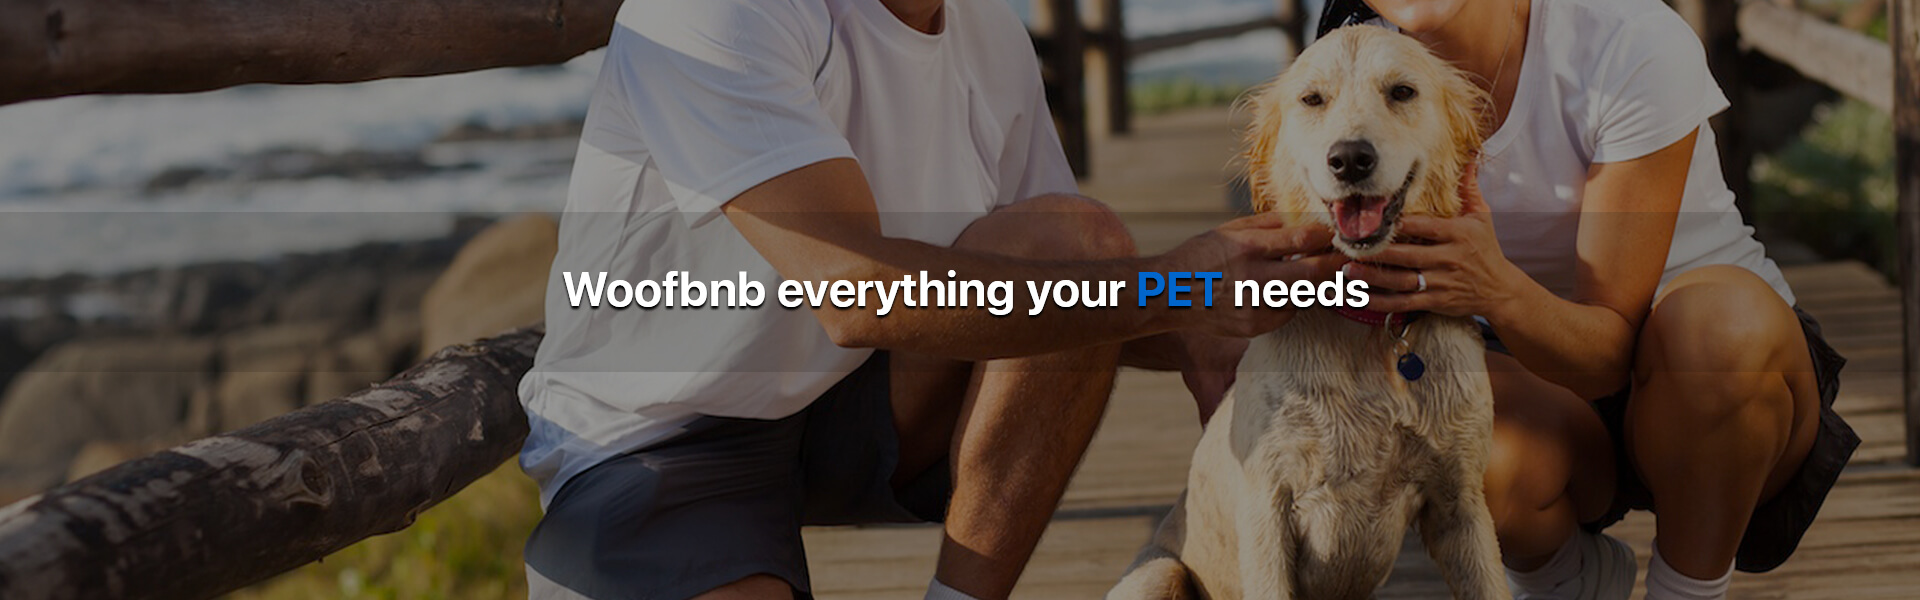 woofbnb.com provides everything your pet needs. Get Dog Grooming & Dog Walking Services at Pune, India